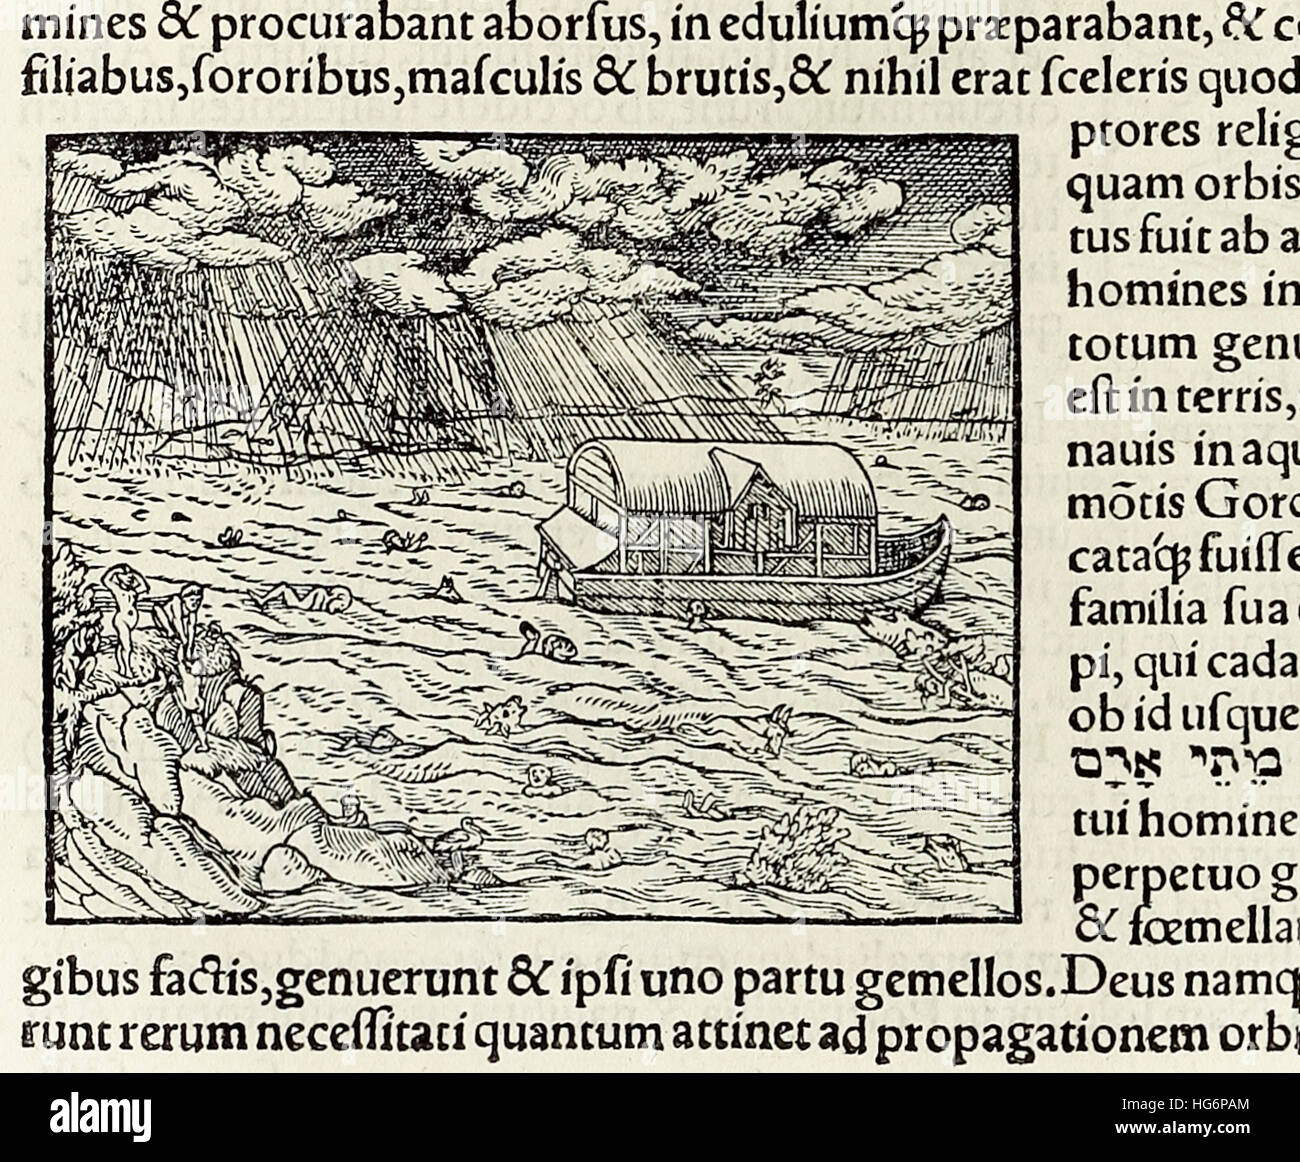 Noah's Ark and the deluge, woodcut from 1550 edition of 'Cosmographia' by  Sebastian Munster (1488-1552). See description - Stock Image